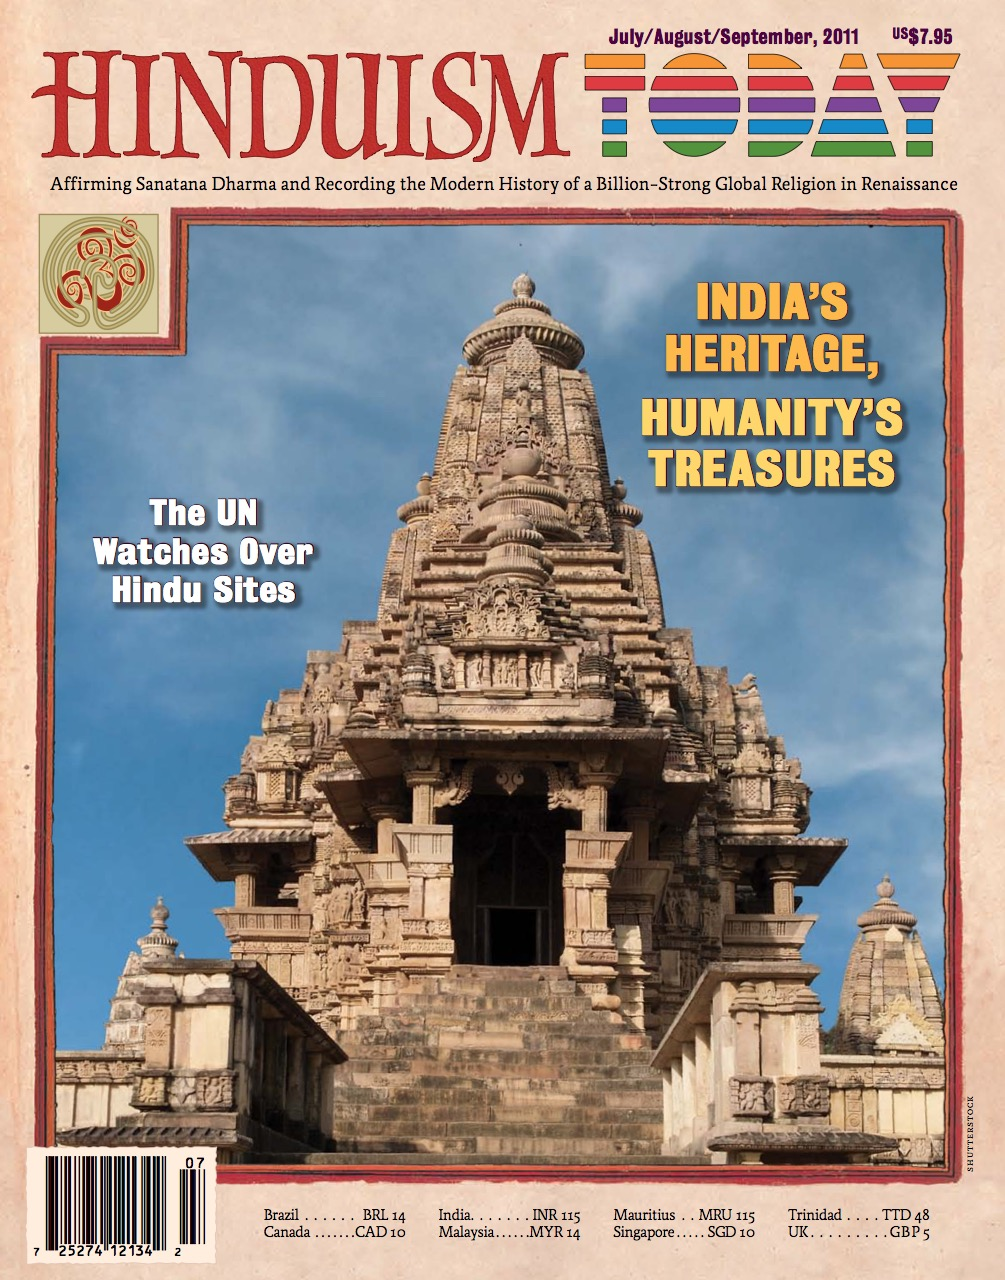 Hinduism Today Jul/Aug/Sep 2011